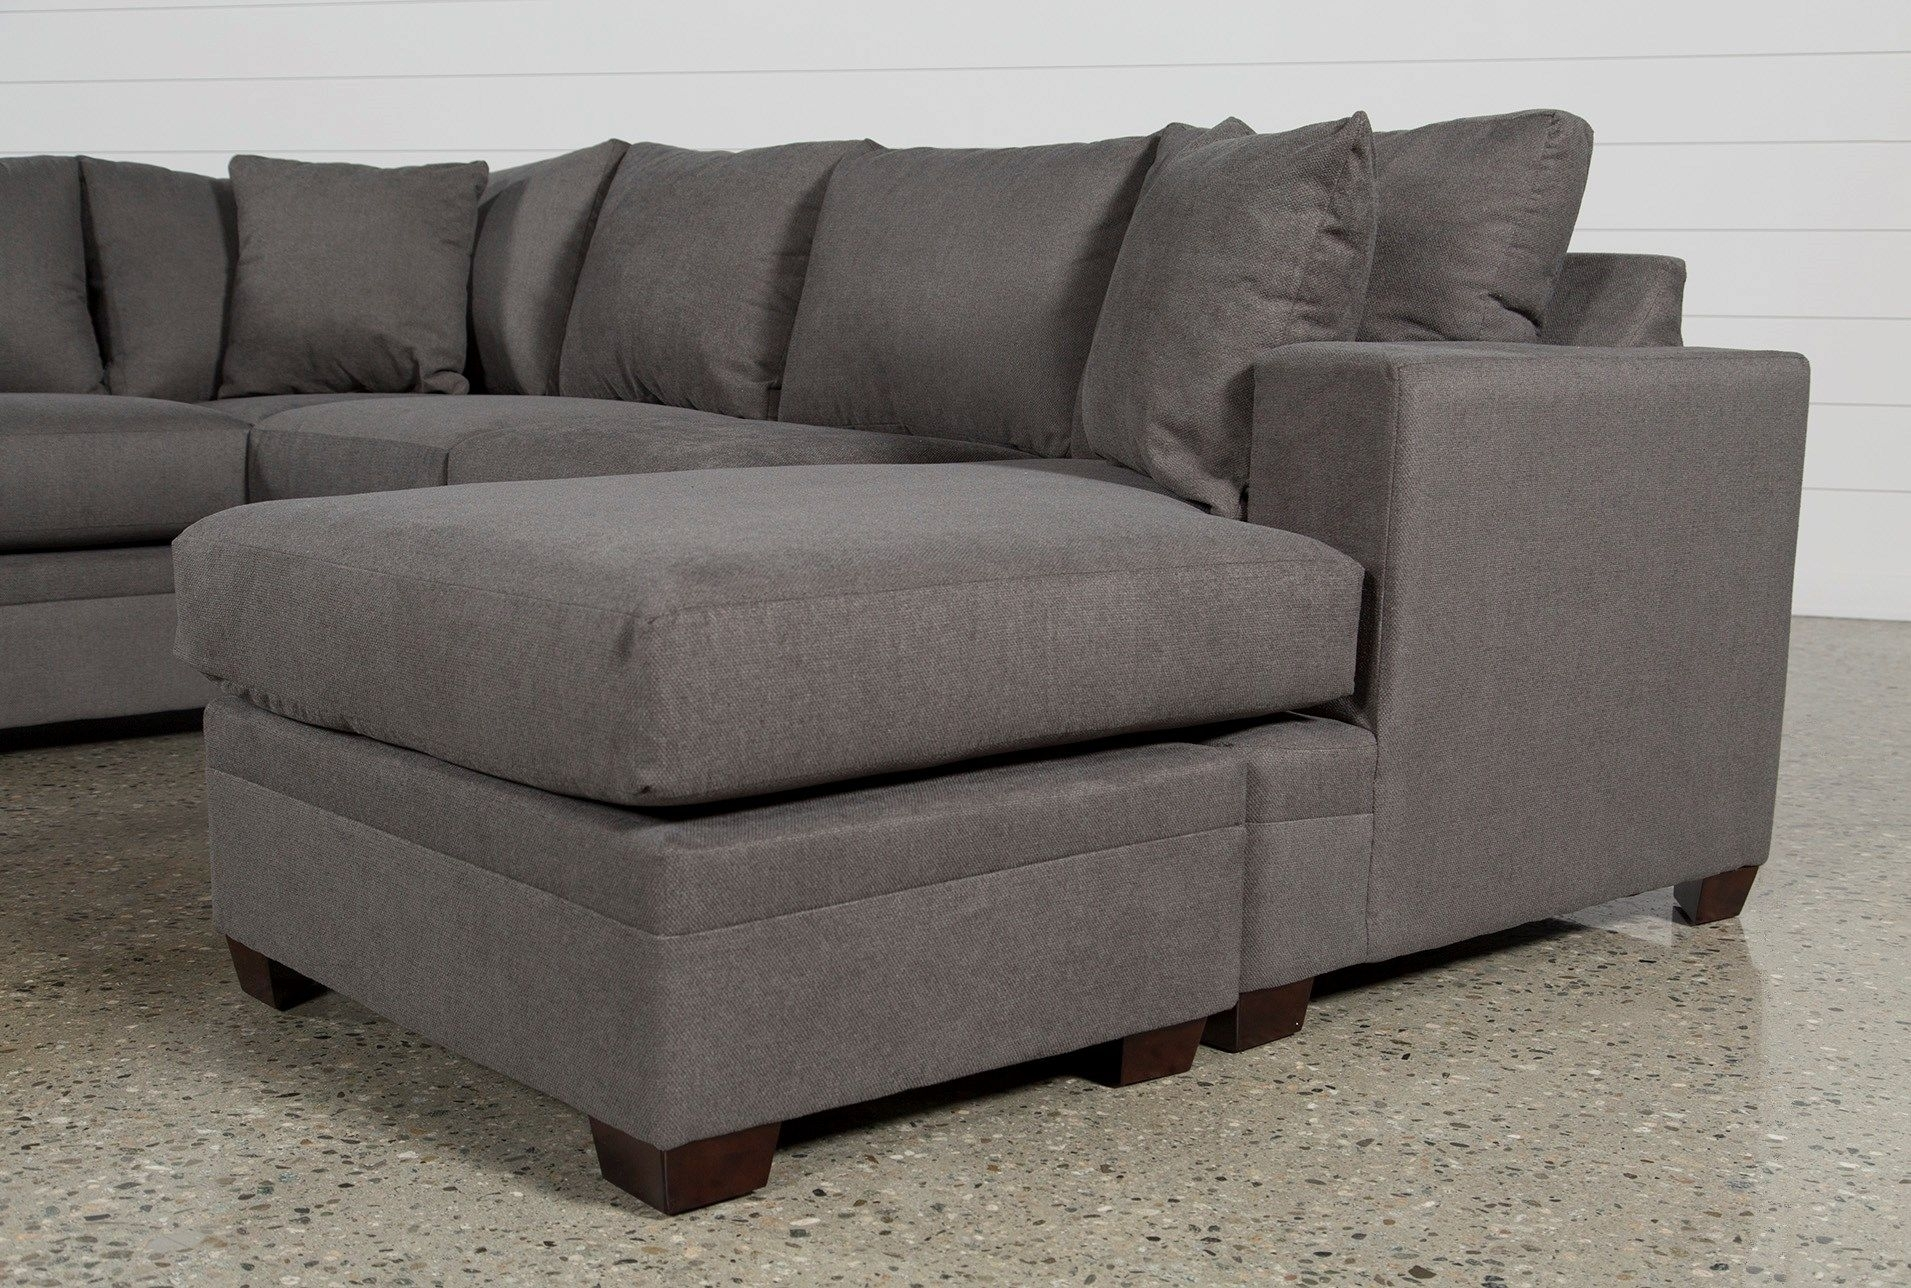 Kerri 2 Piece Sectional W/raf Chaise | Ideas For The House With Kerri 2 Piece Sectionals With Raf Chaise (Image 17 of 25)